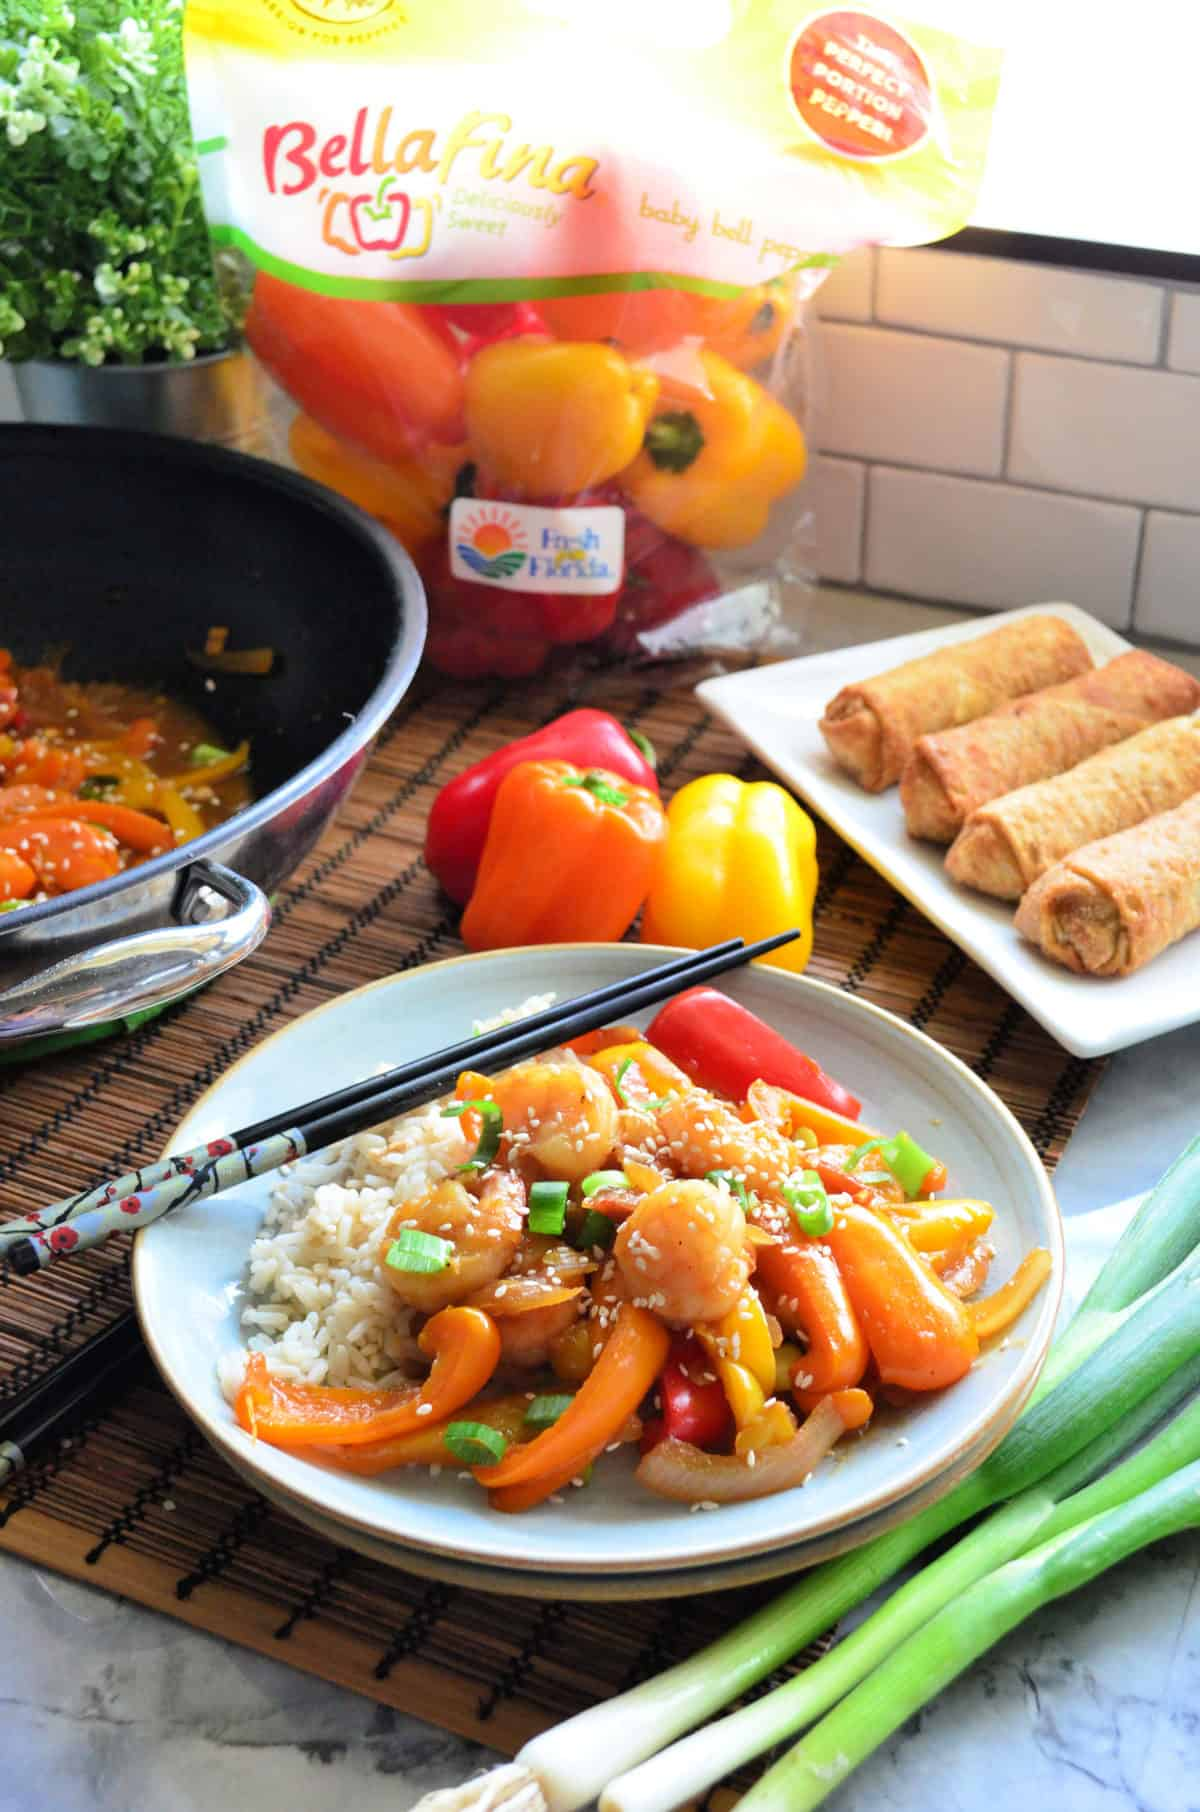 Plated Shrimp and Sweet Pepper Stir-Fry with rice in front of wok, peppers, and egg roll platter.